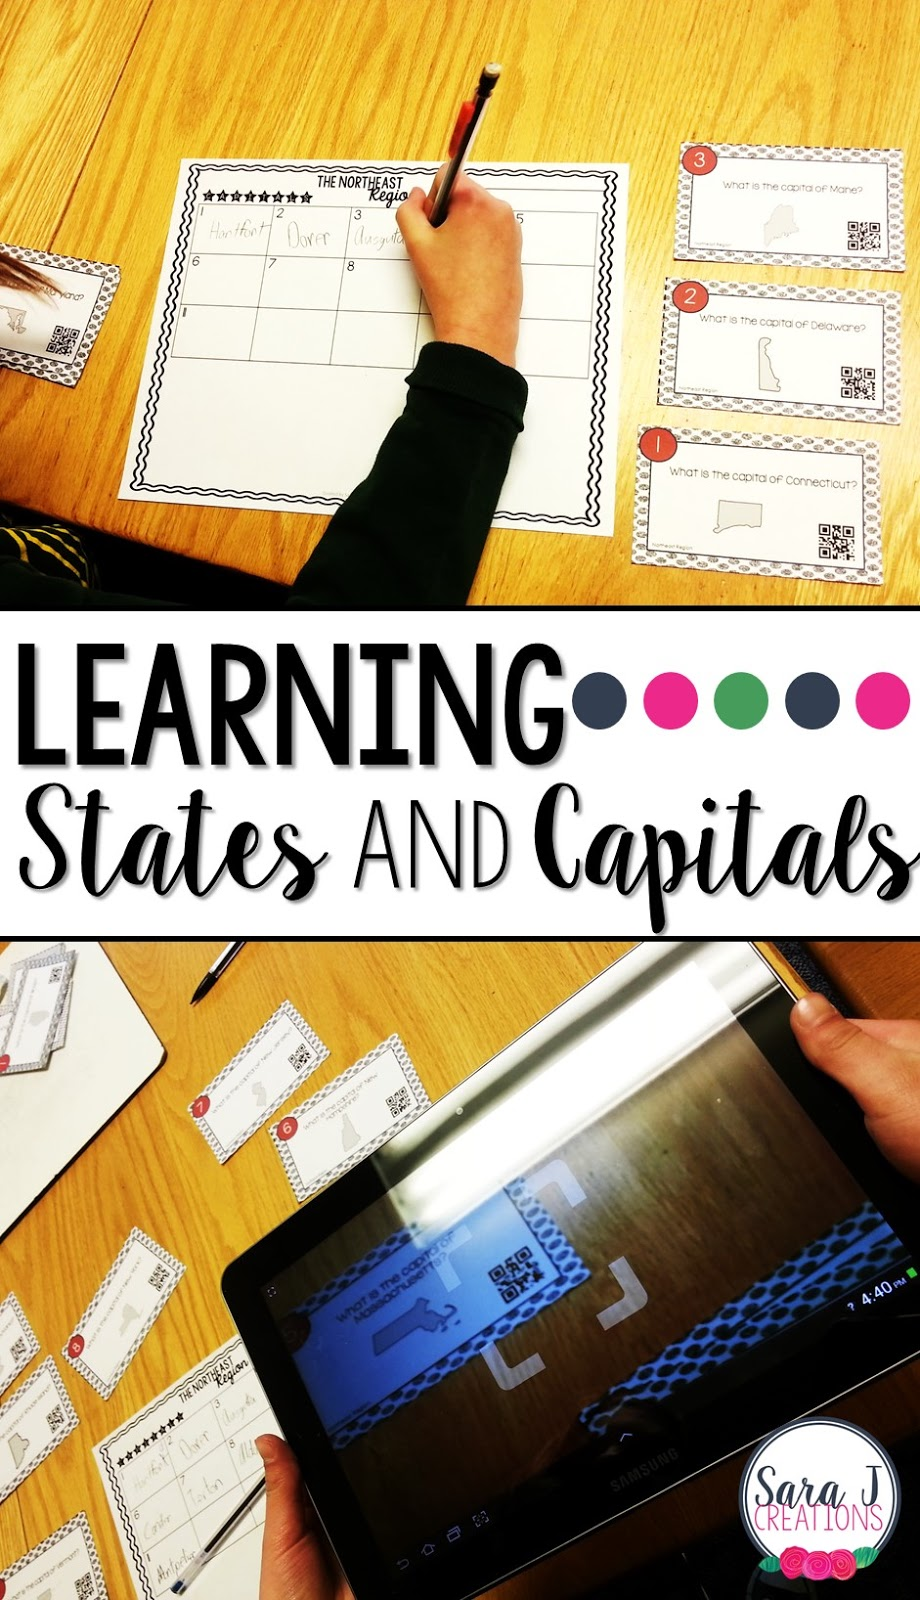 Learning the states and capitals by region can be so much fun by using task cards with QR codes!